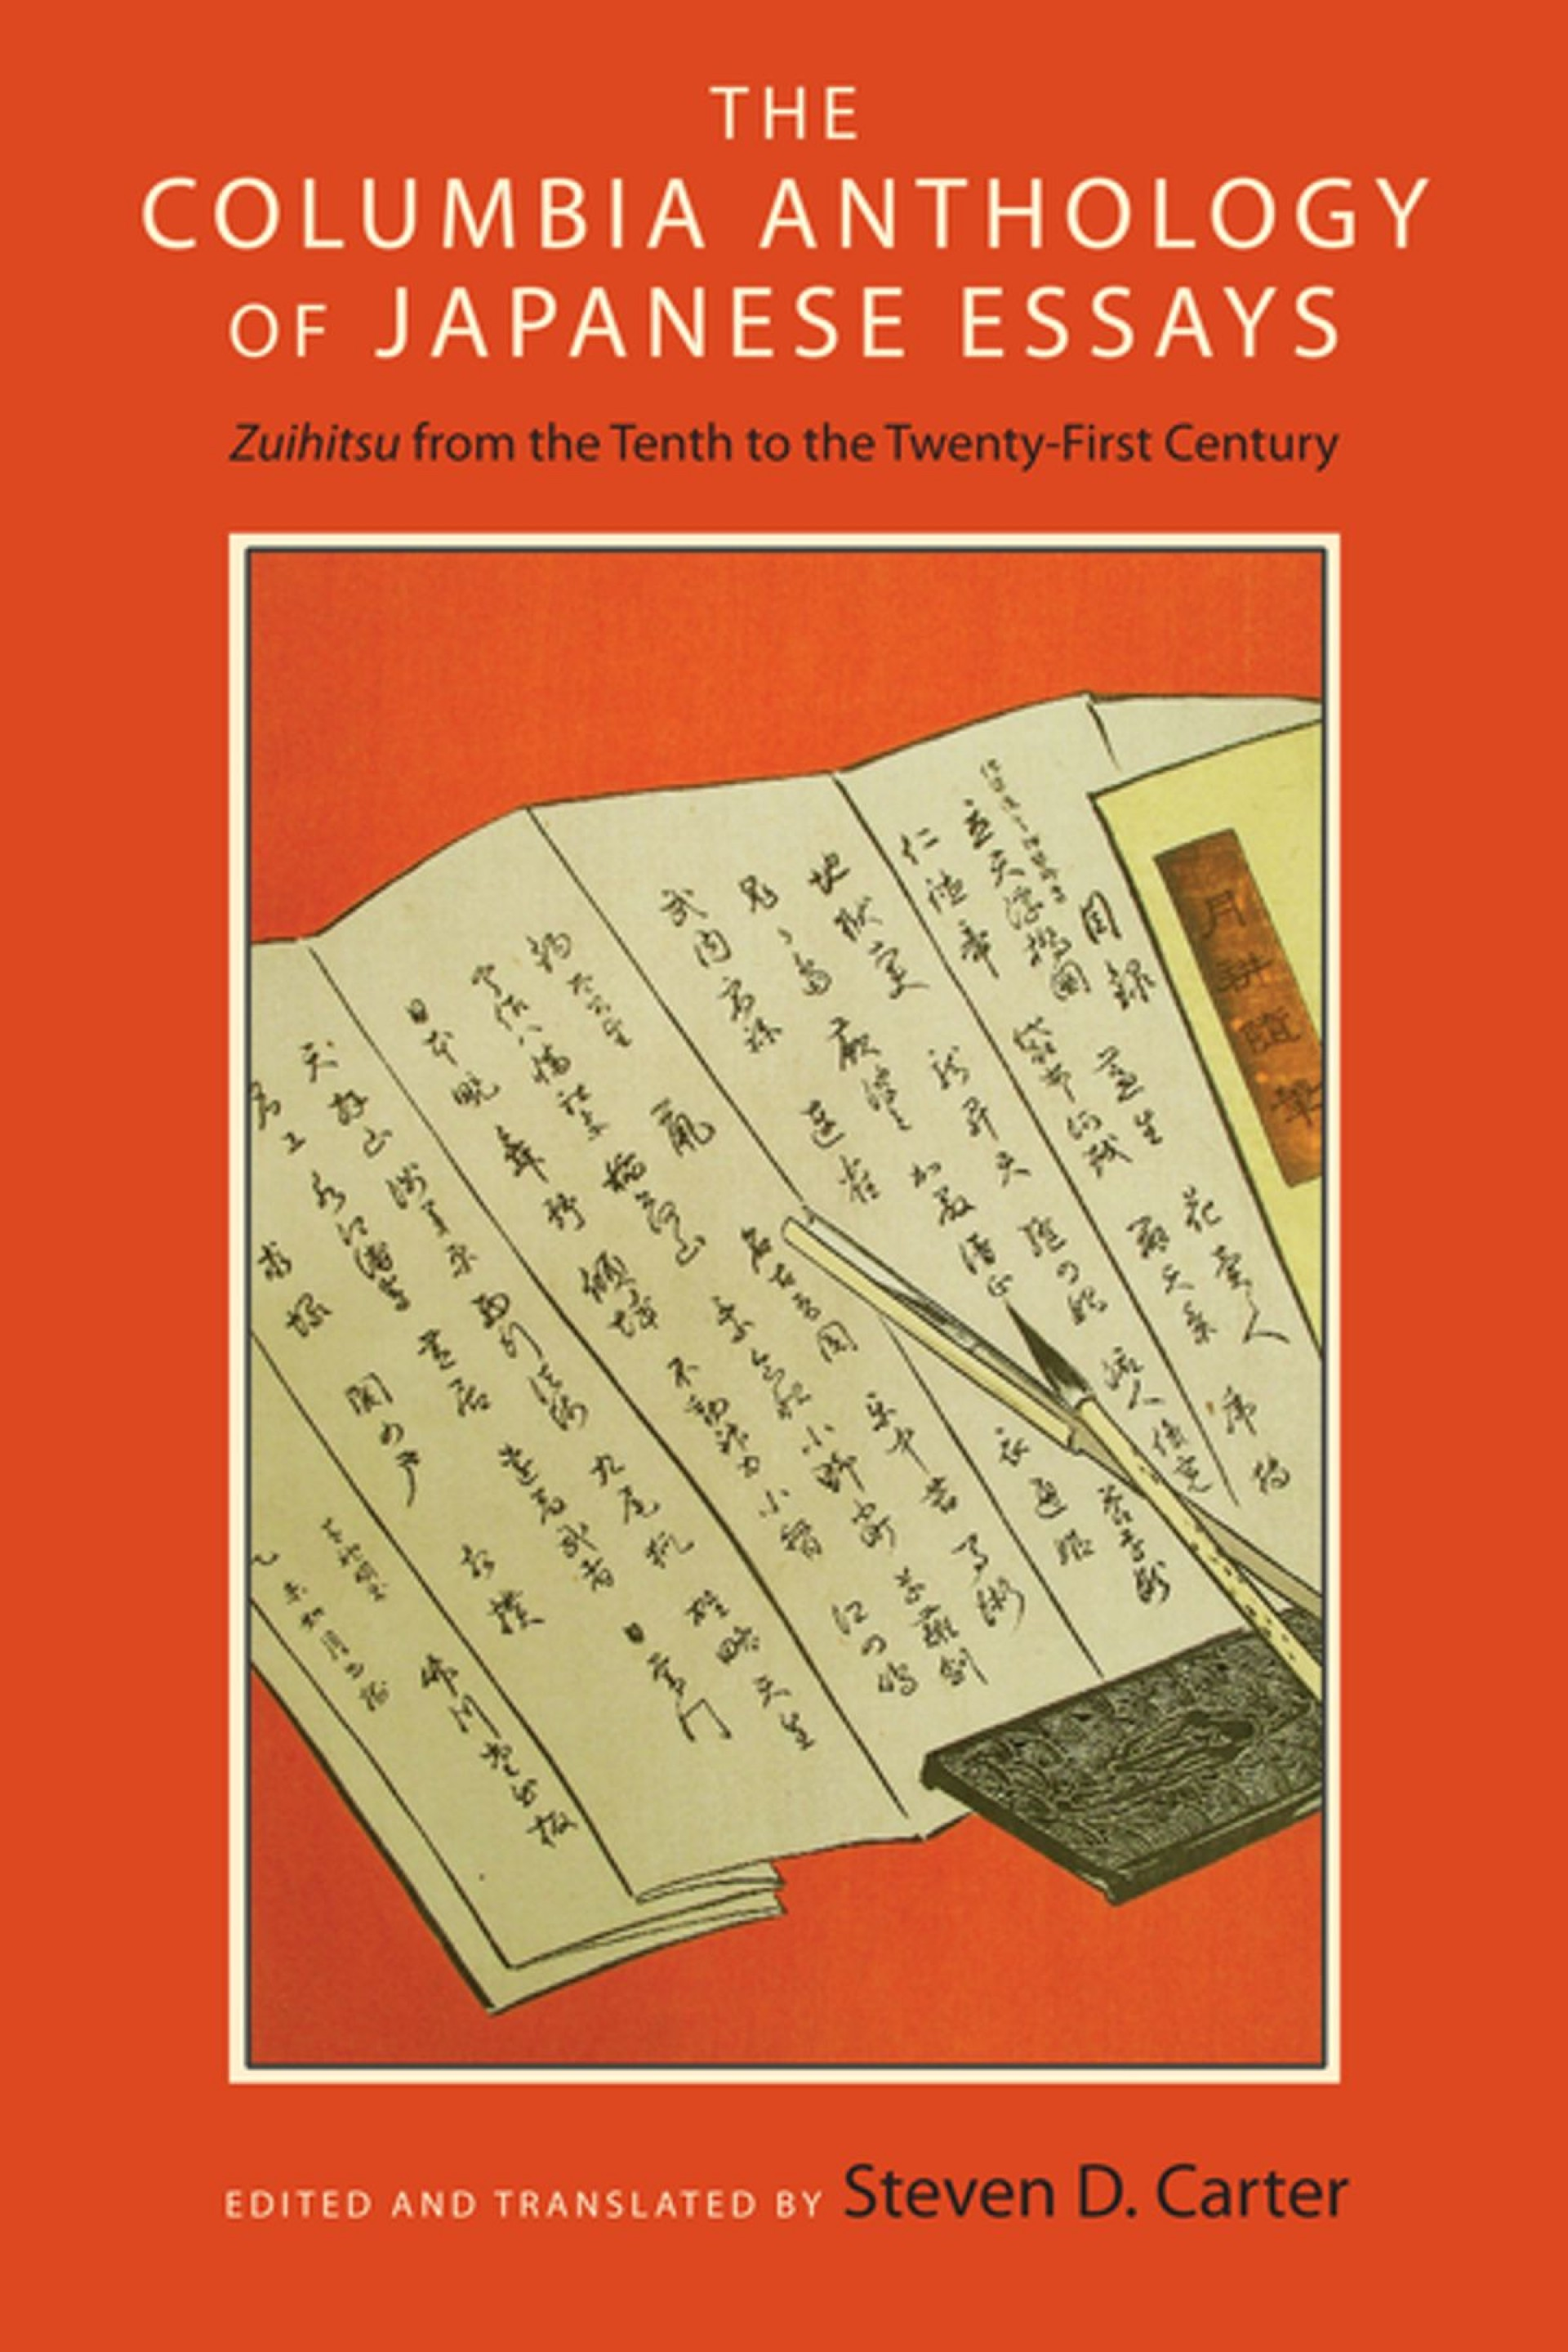 002 The Columbia Anthology Of Japanese Essays Essay Shocking Application That Worked Mba Tips 1920